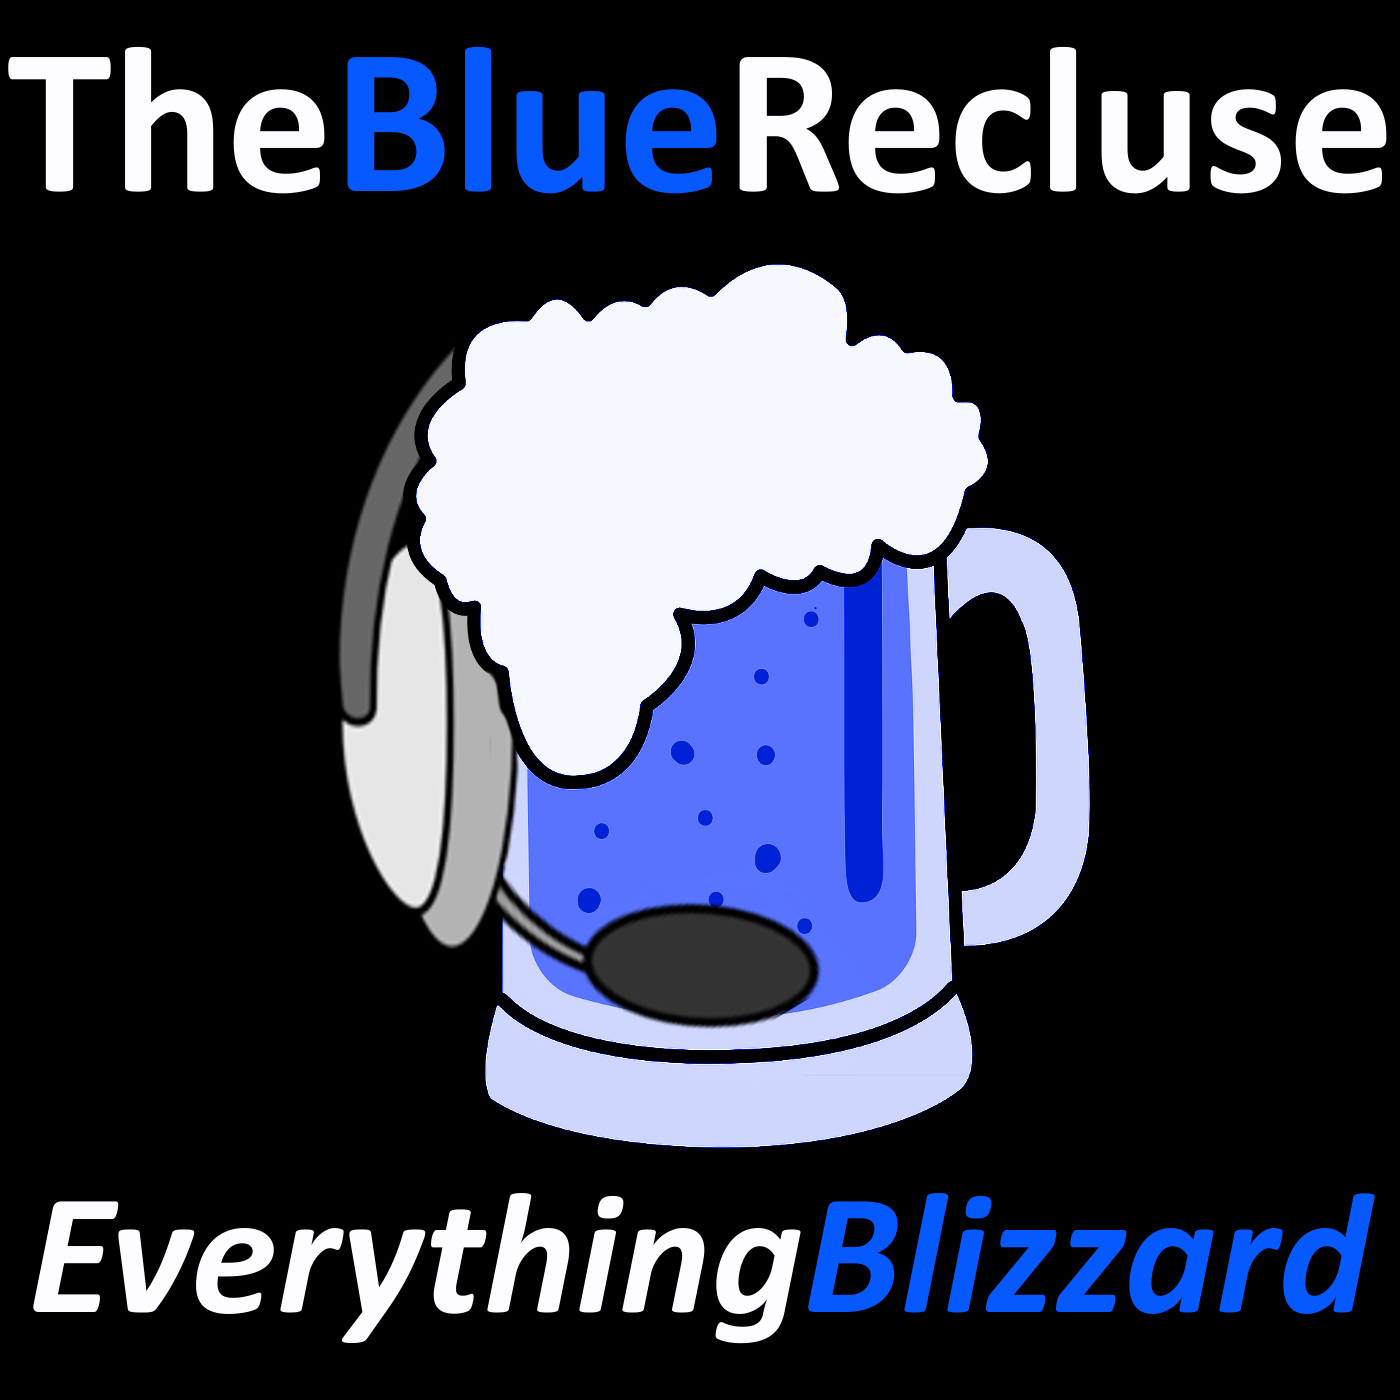 The Blue Recluse: Everything Blizzard